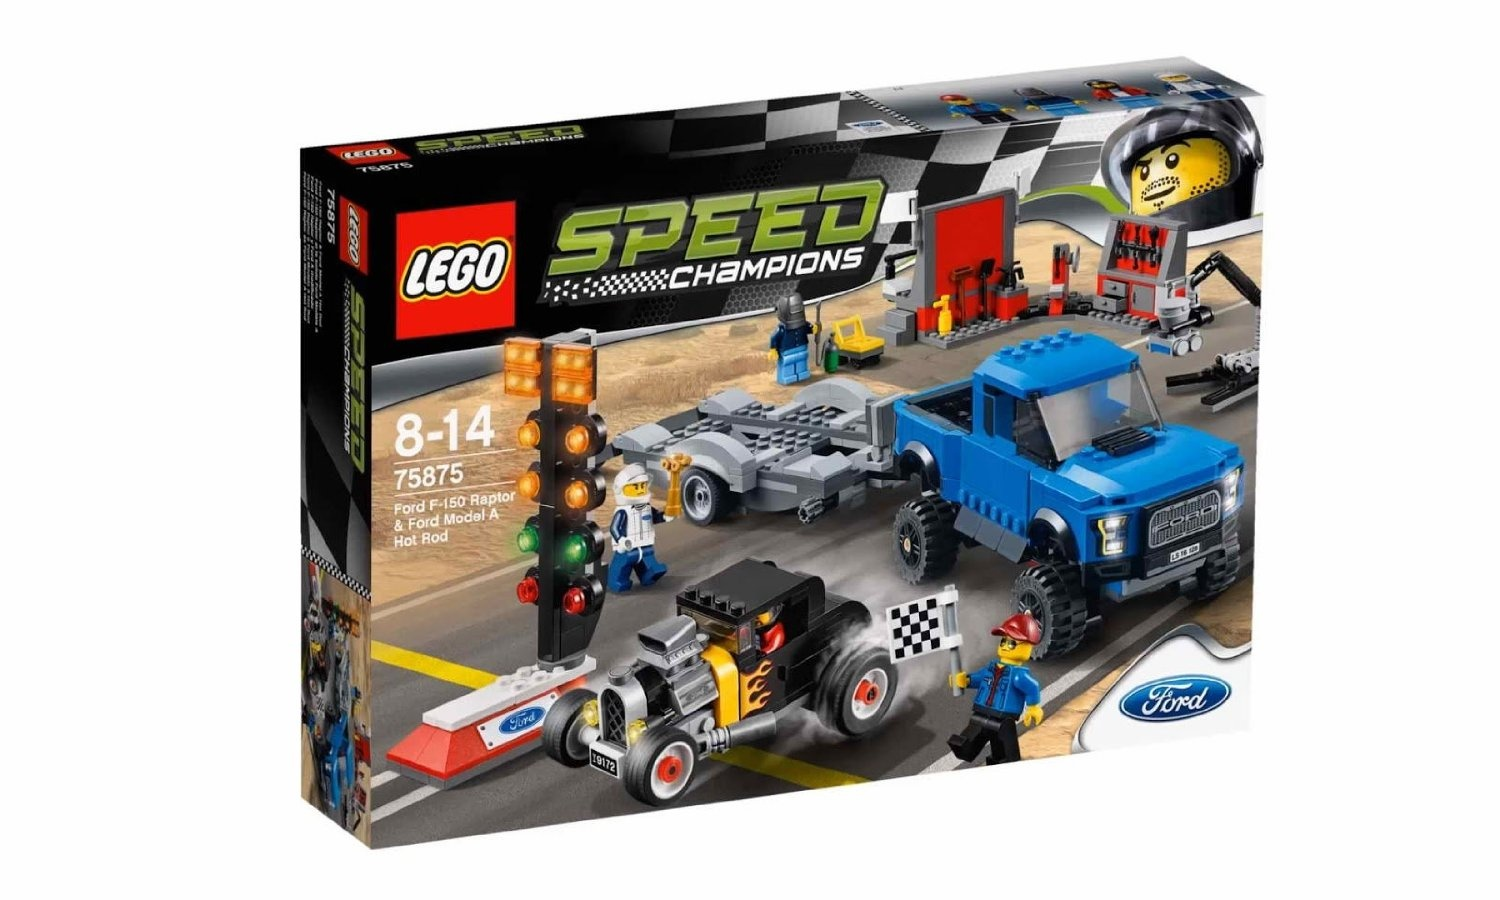 Lego speed champions ford f 150 raptor ford model a hot rod 75875 share this product voltagebd Images